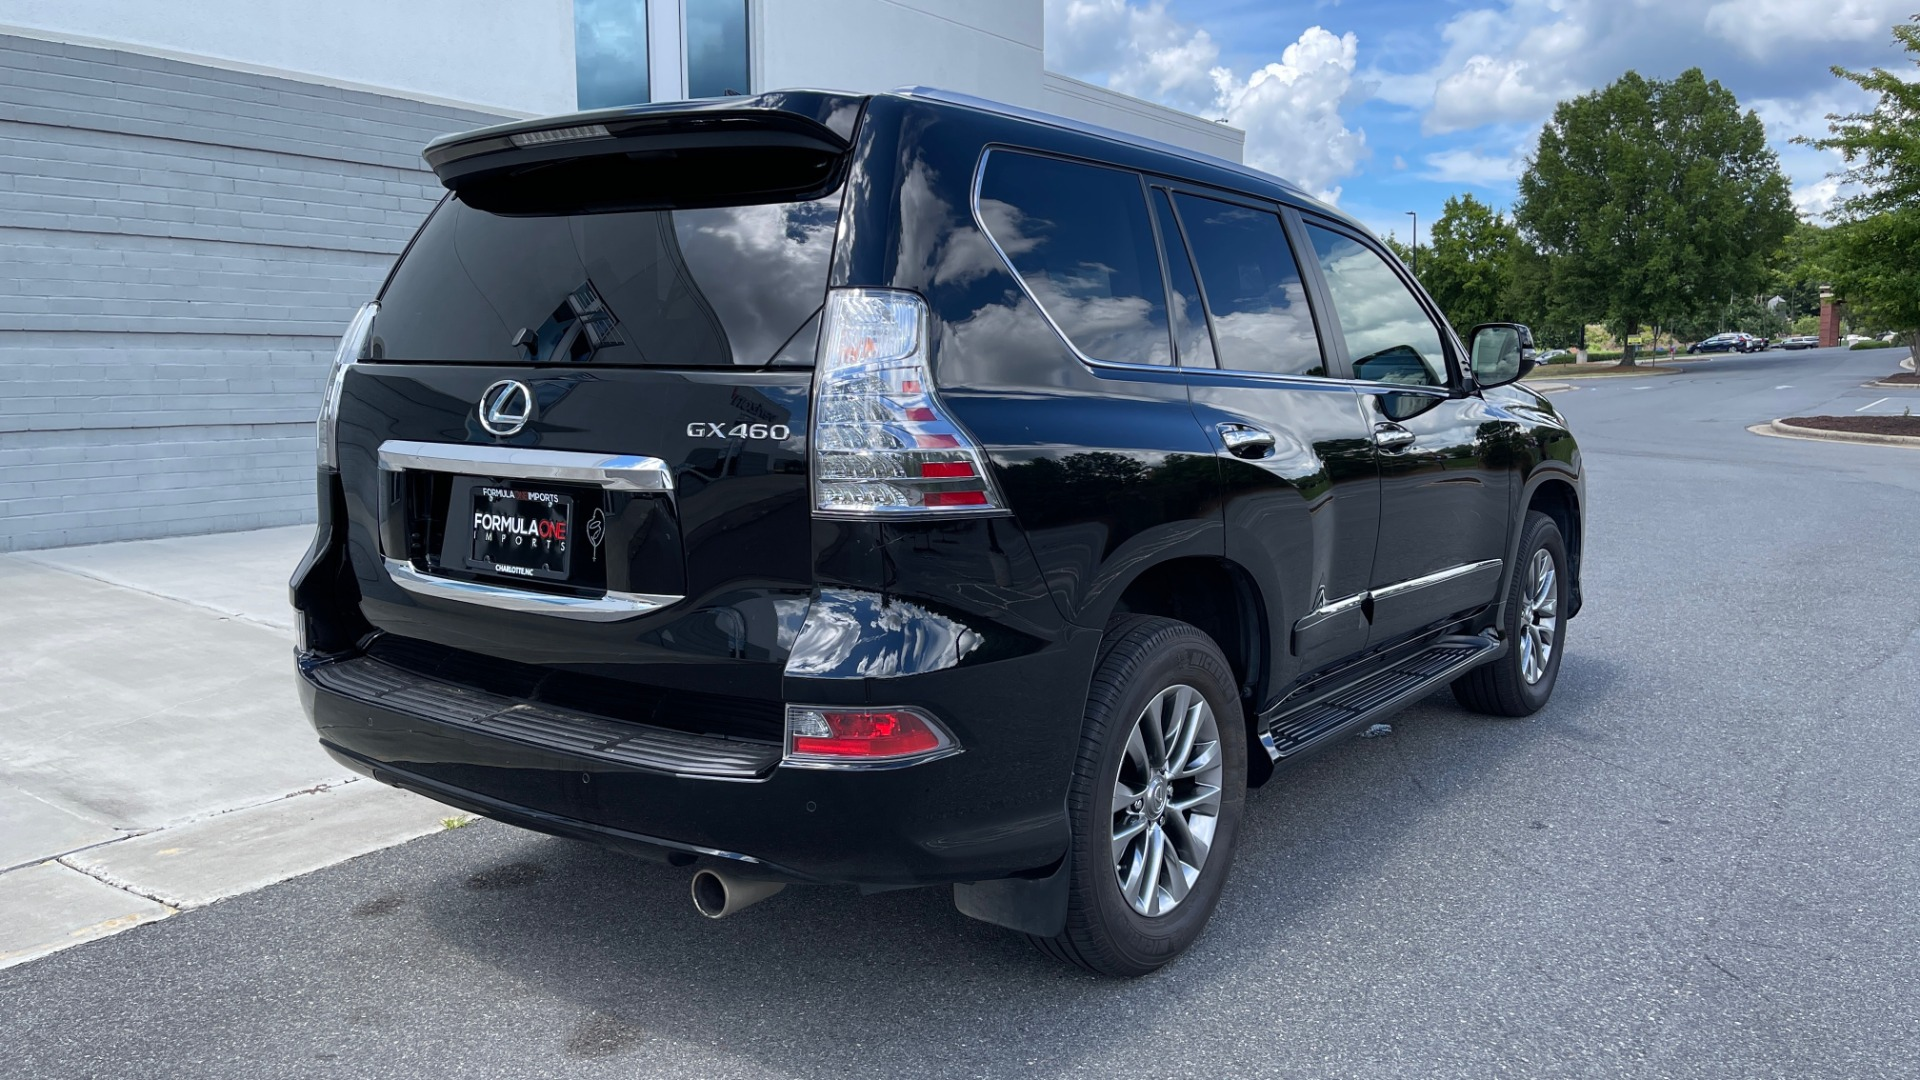 Used 2017 Lexus GX GX 460 LUXURY / AWD / NAV / SUNROOF / MARK LEV SND / REARVIEW for sale $37,995 at Formula Imports in Charlotte NC 28227 5